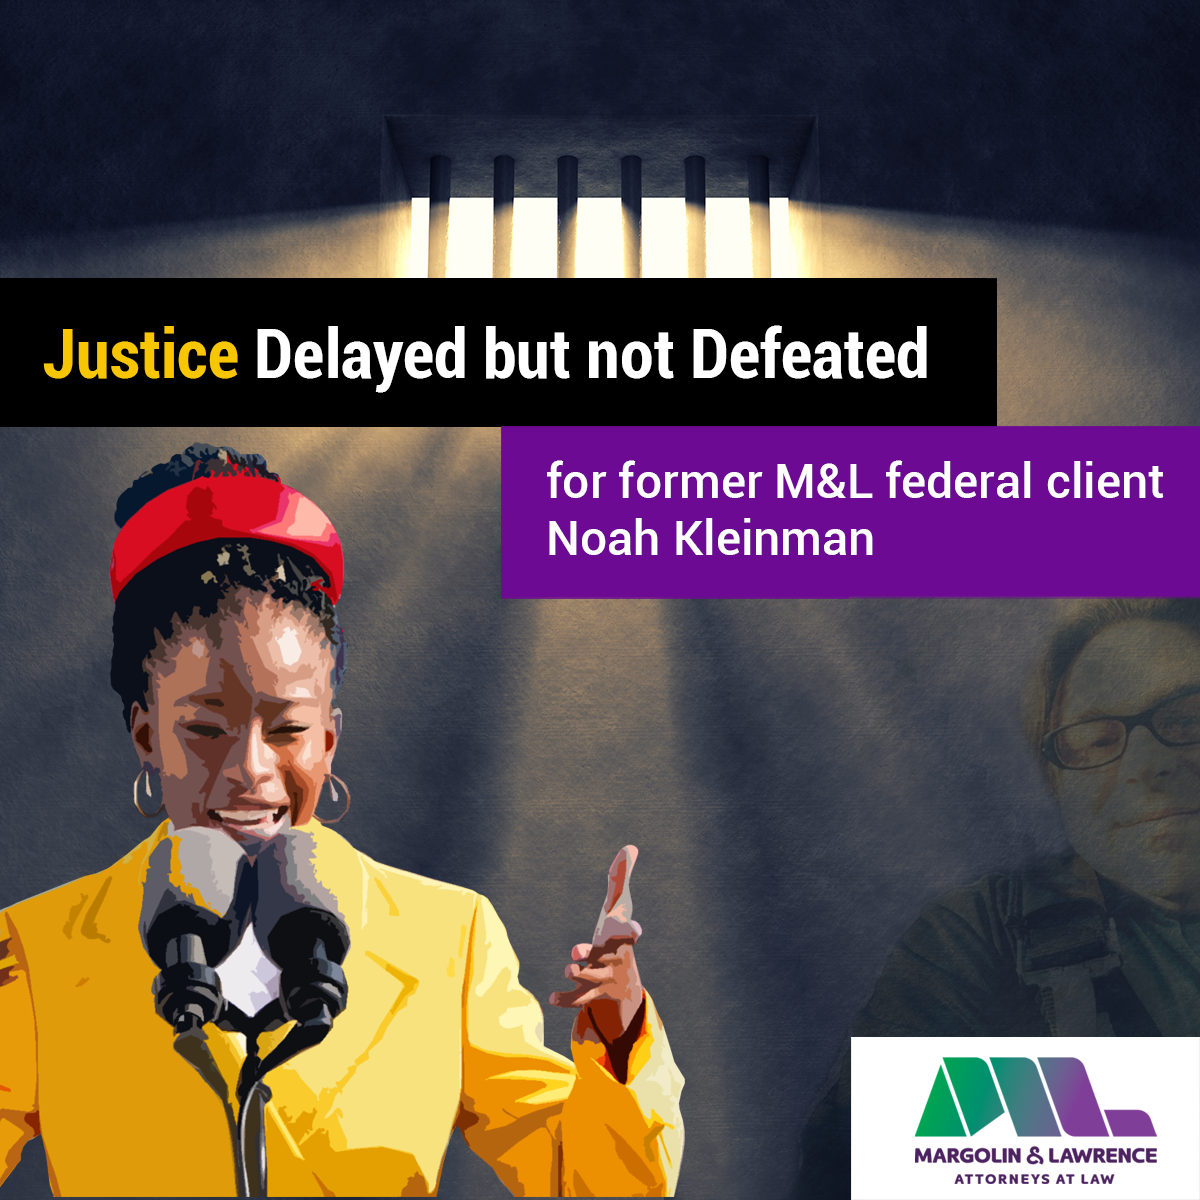 justice delayed but not defeated for Noah Kleinman